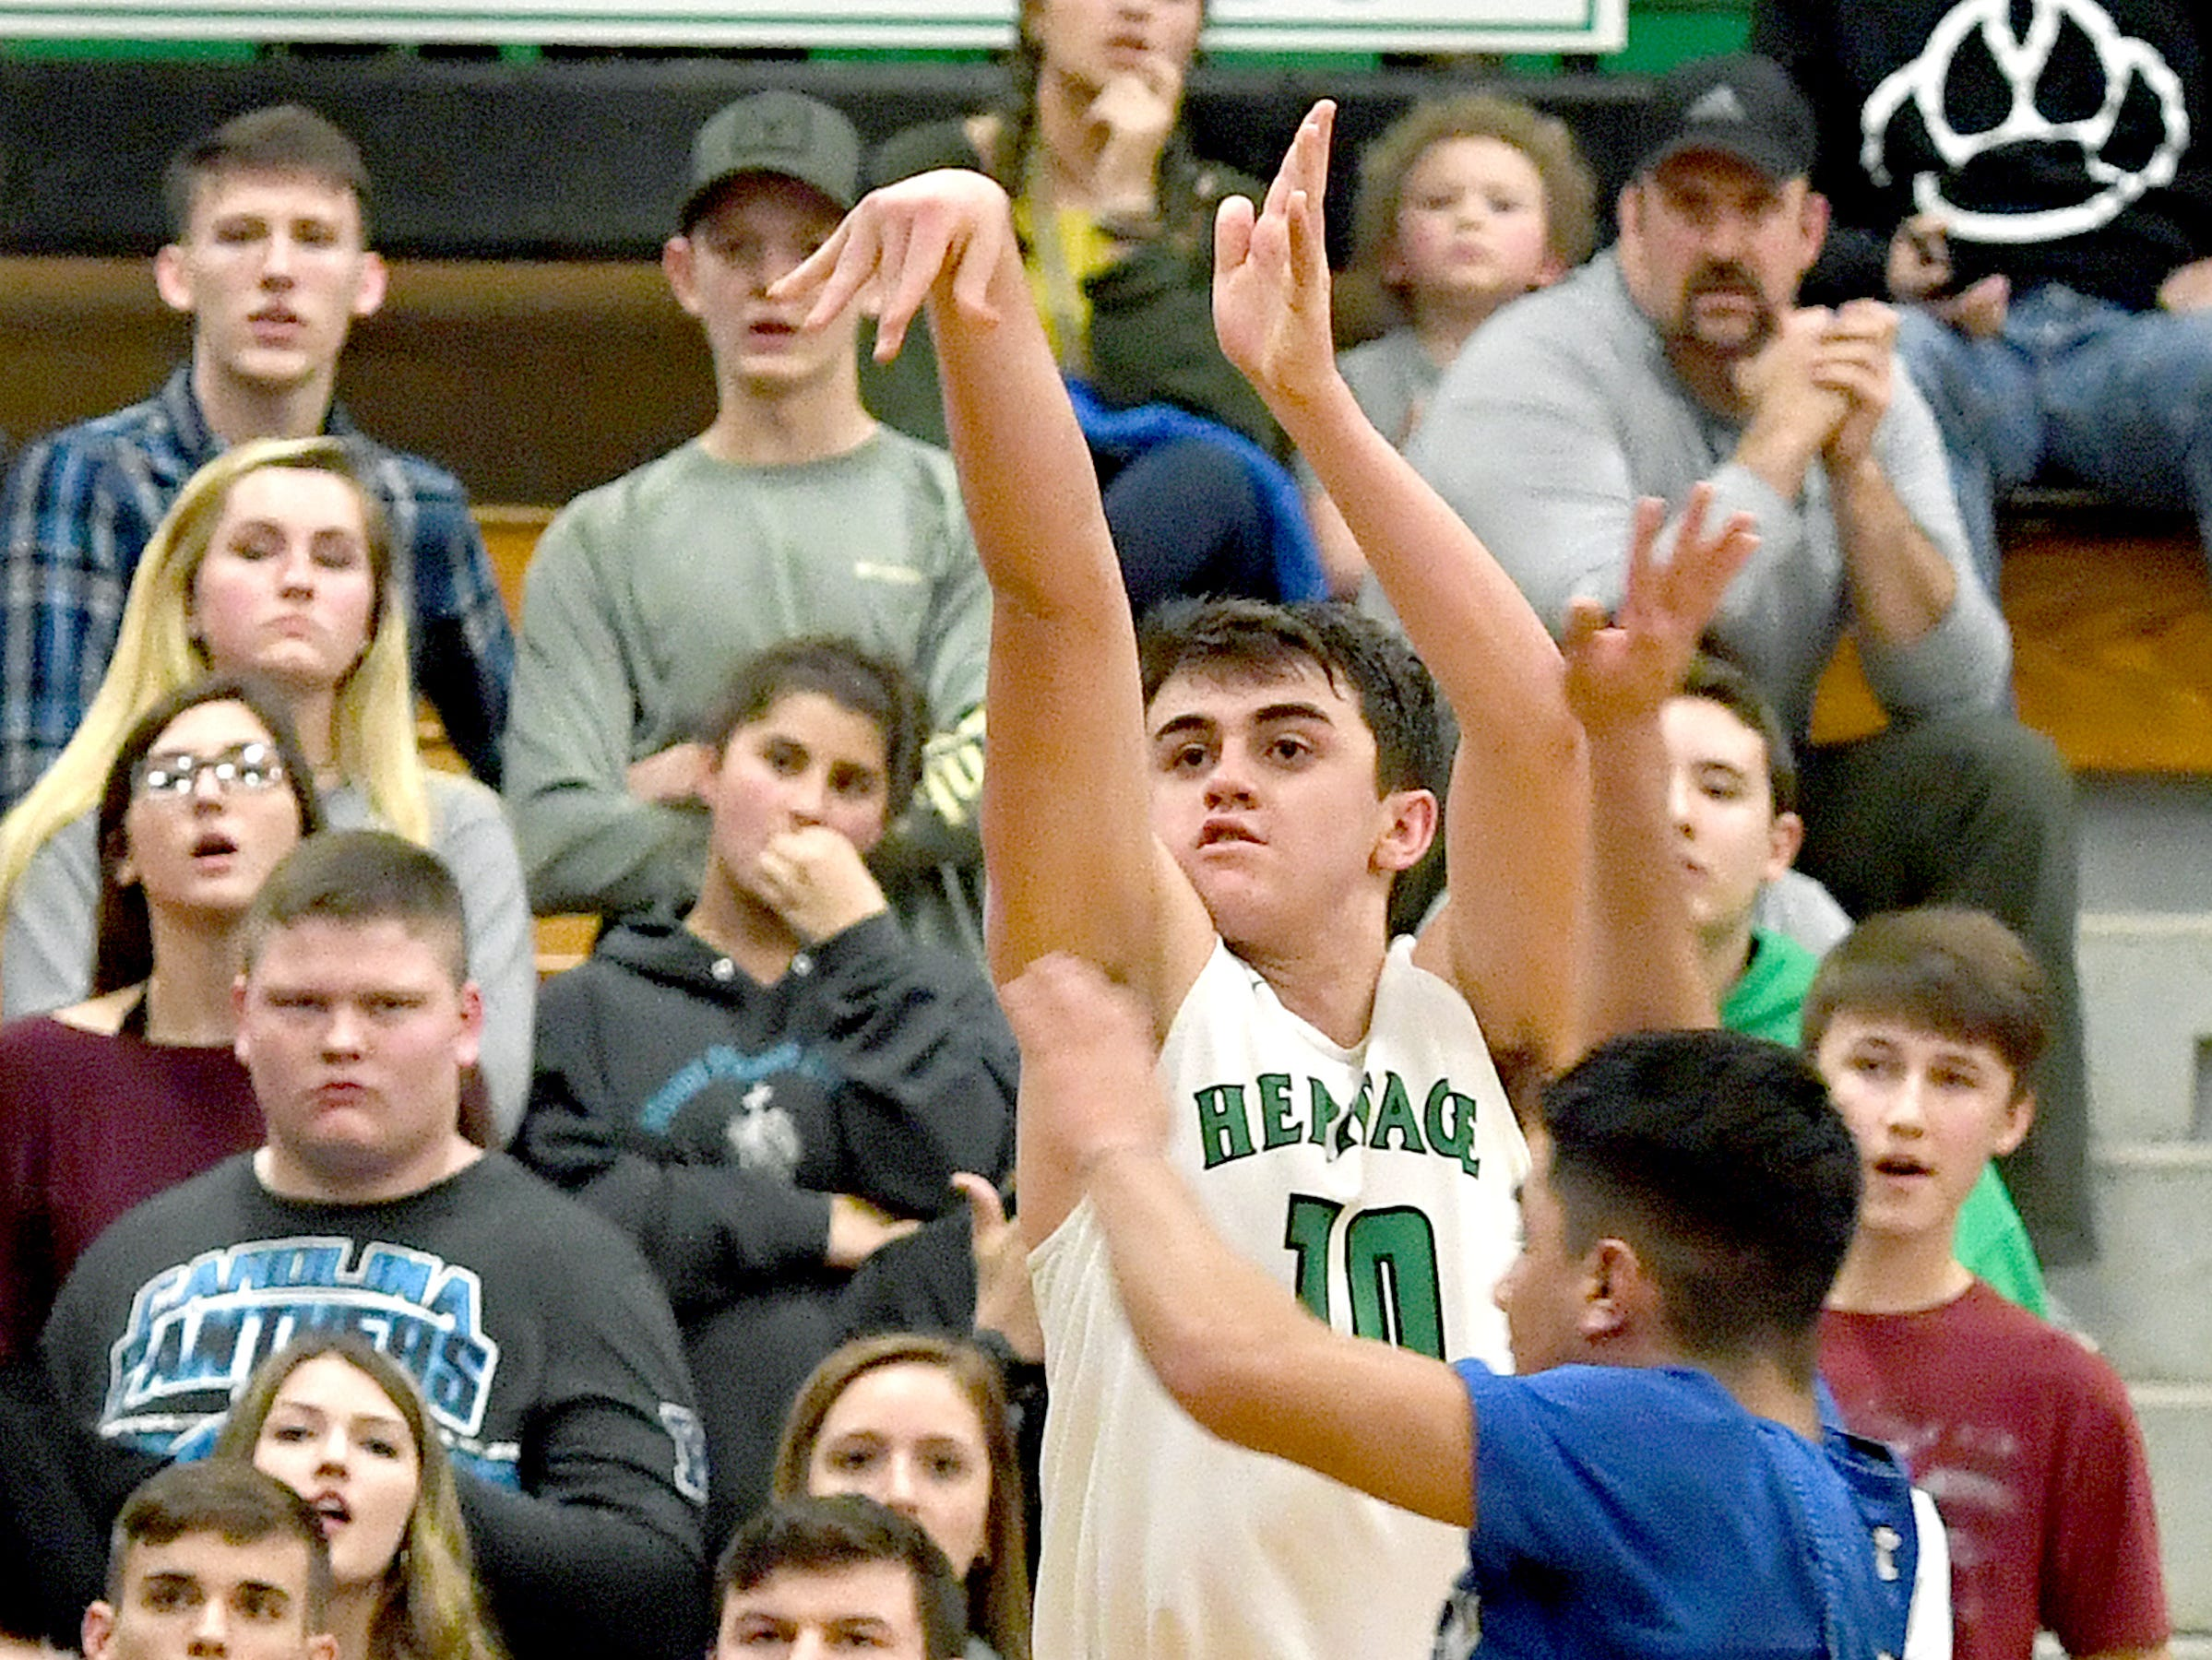 Mountain Heritage's Callin Randolph goes up for a shot from the outside against Maiden during their playoff game at Mountain Heritage High School on Feb. 28, 2019. The Cougars won 74-69 in overtime to advance to the next round.